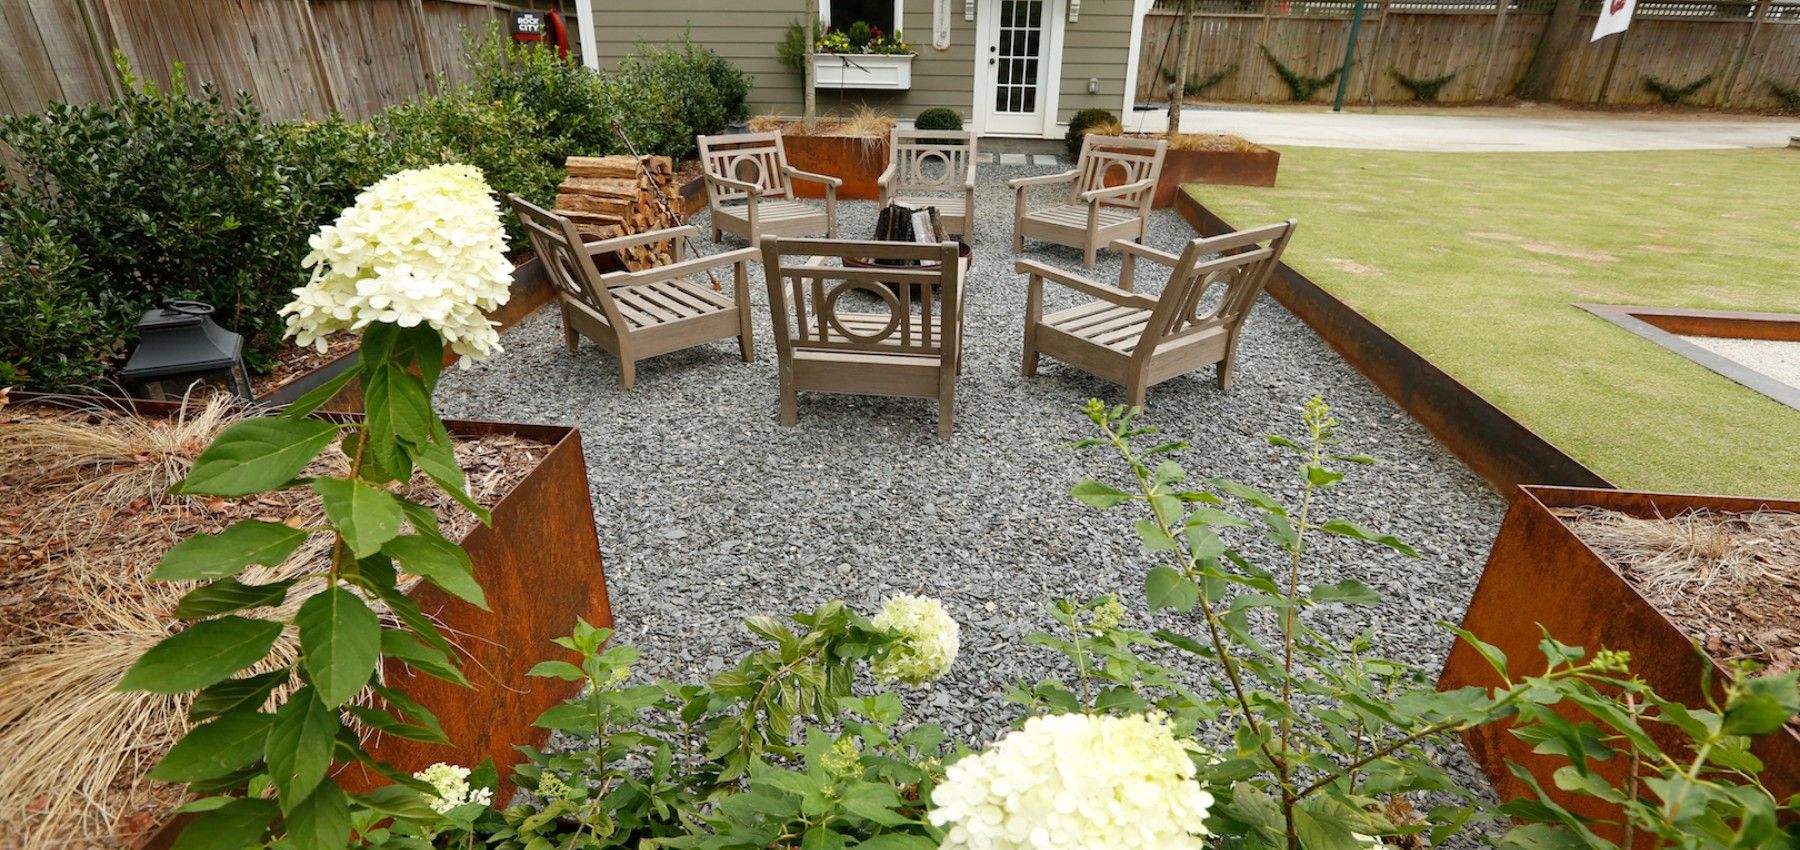 How Much Does Landscaping Cost intended for Cost Of Backyard Landscaping